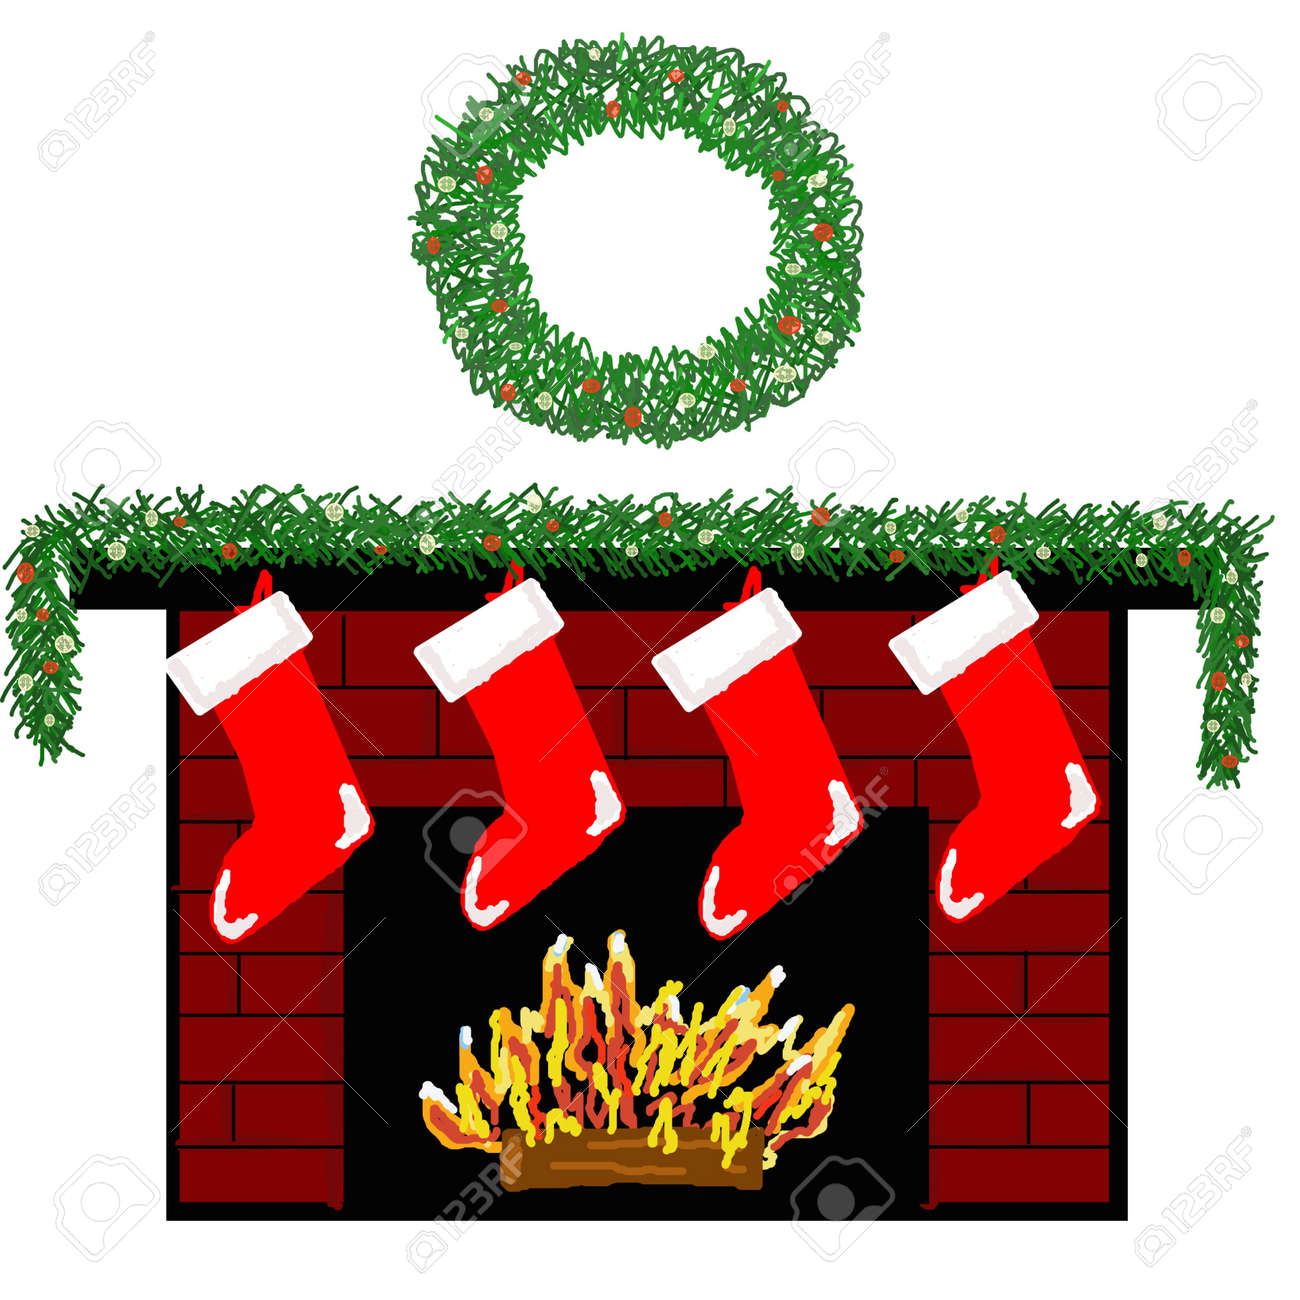 A Cozy Fireplace Decorated For Christmas With Stockings Stock Photo Picture And Royalty Free Image Image 2134413